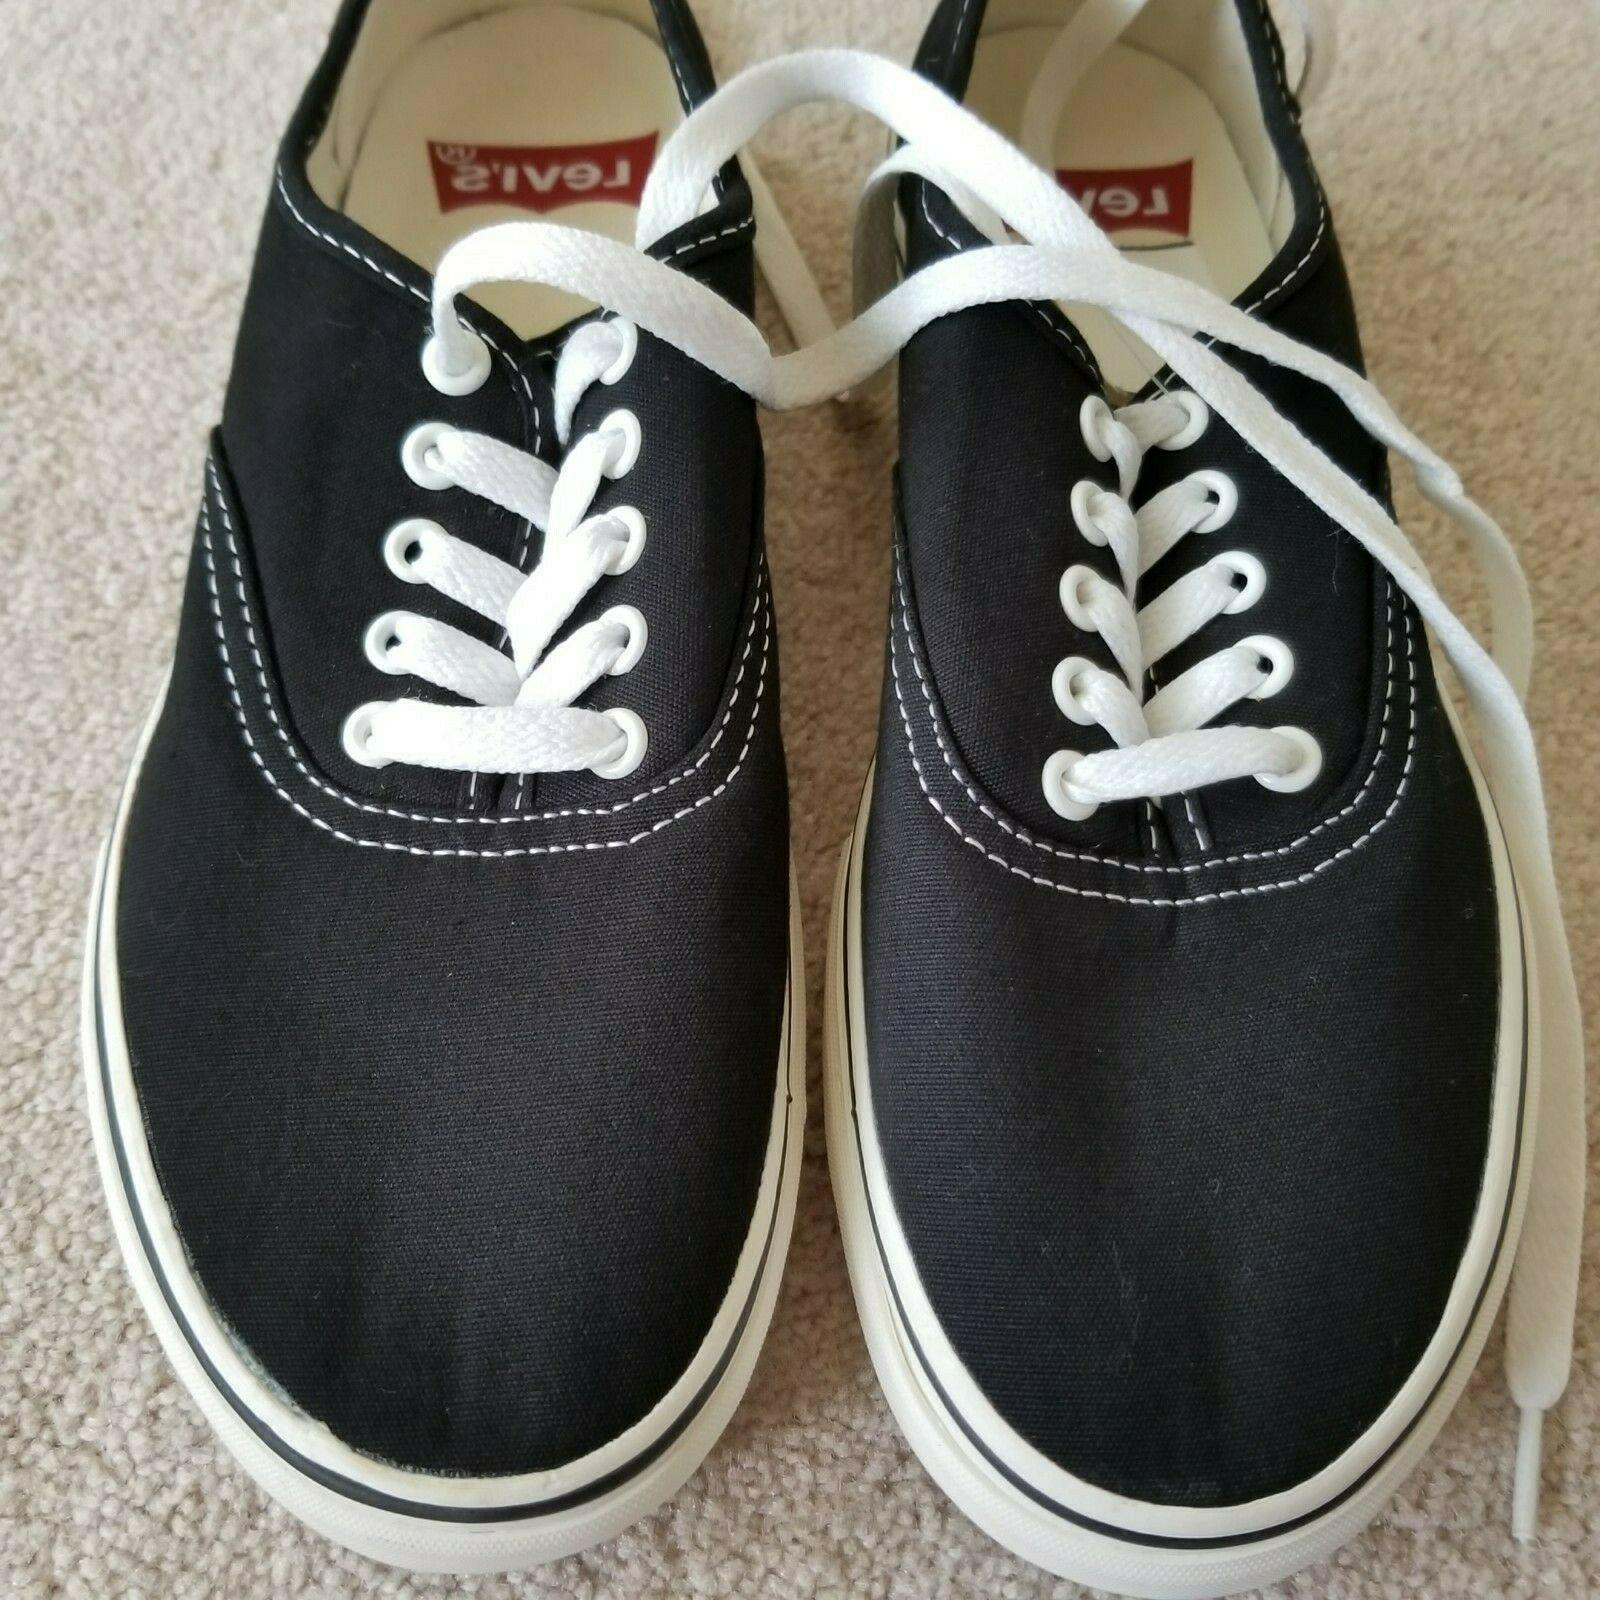 Levi's Black Canvas Shoes Lace Up Men's